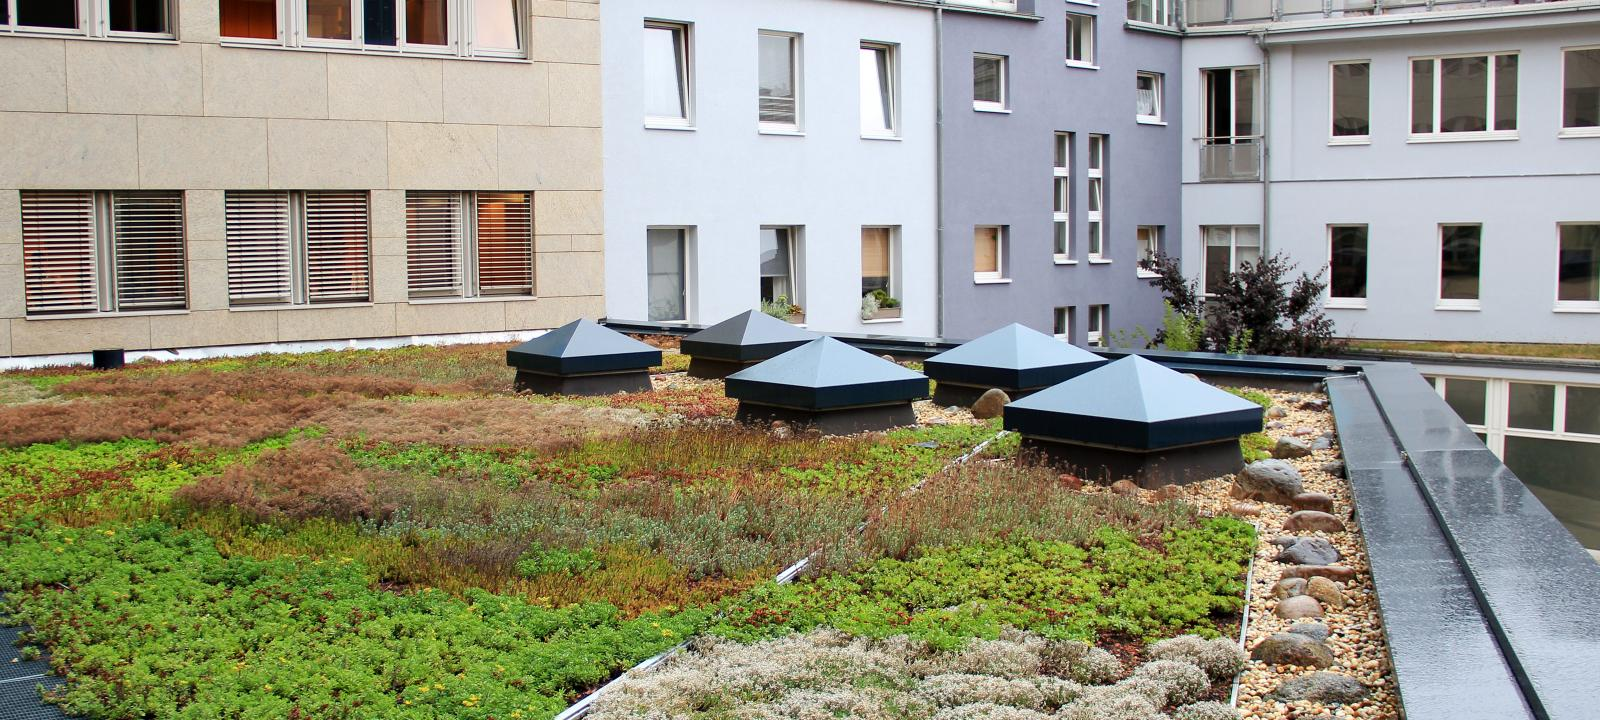 Green roof during rainfall